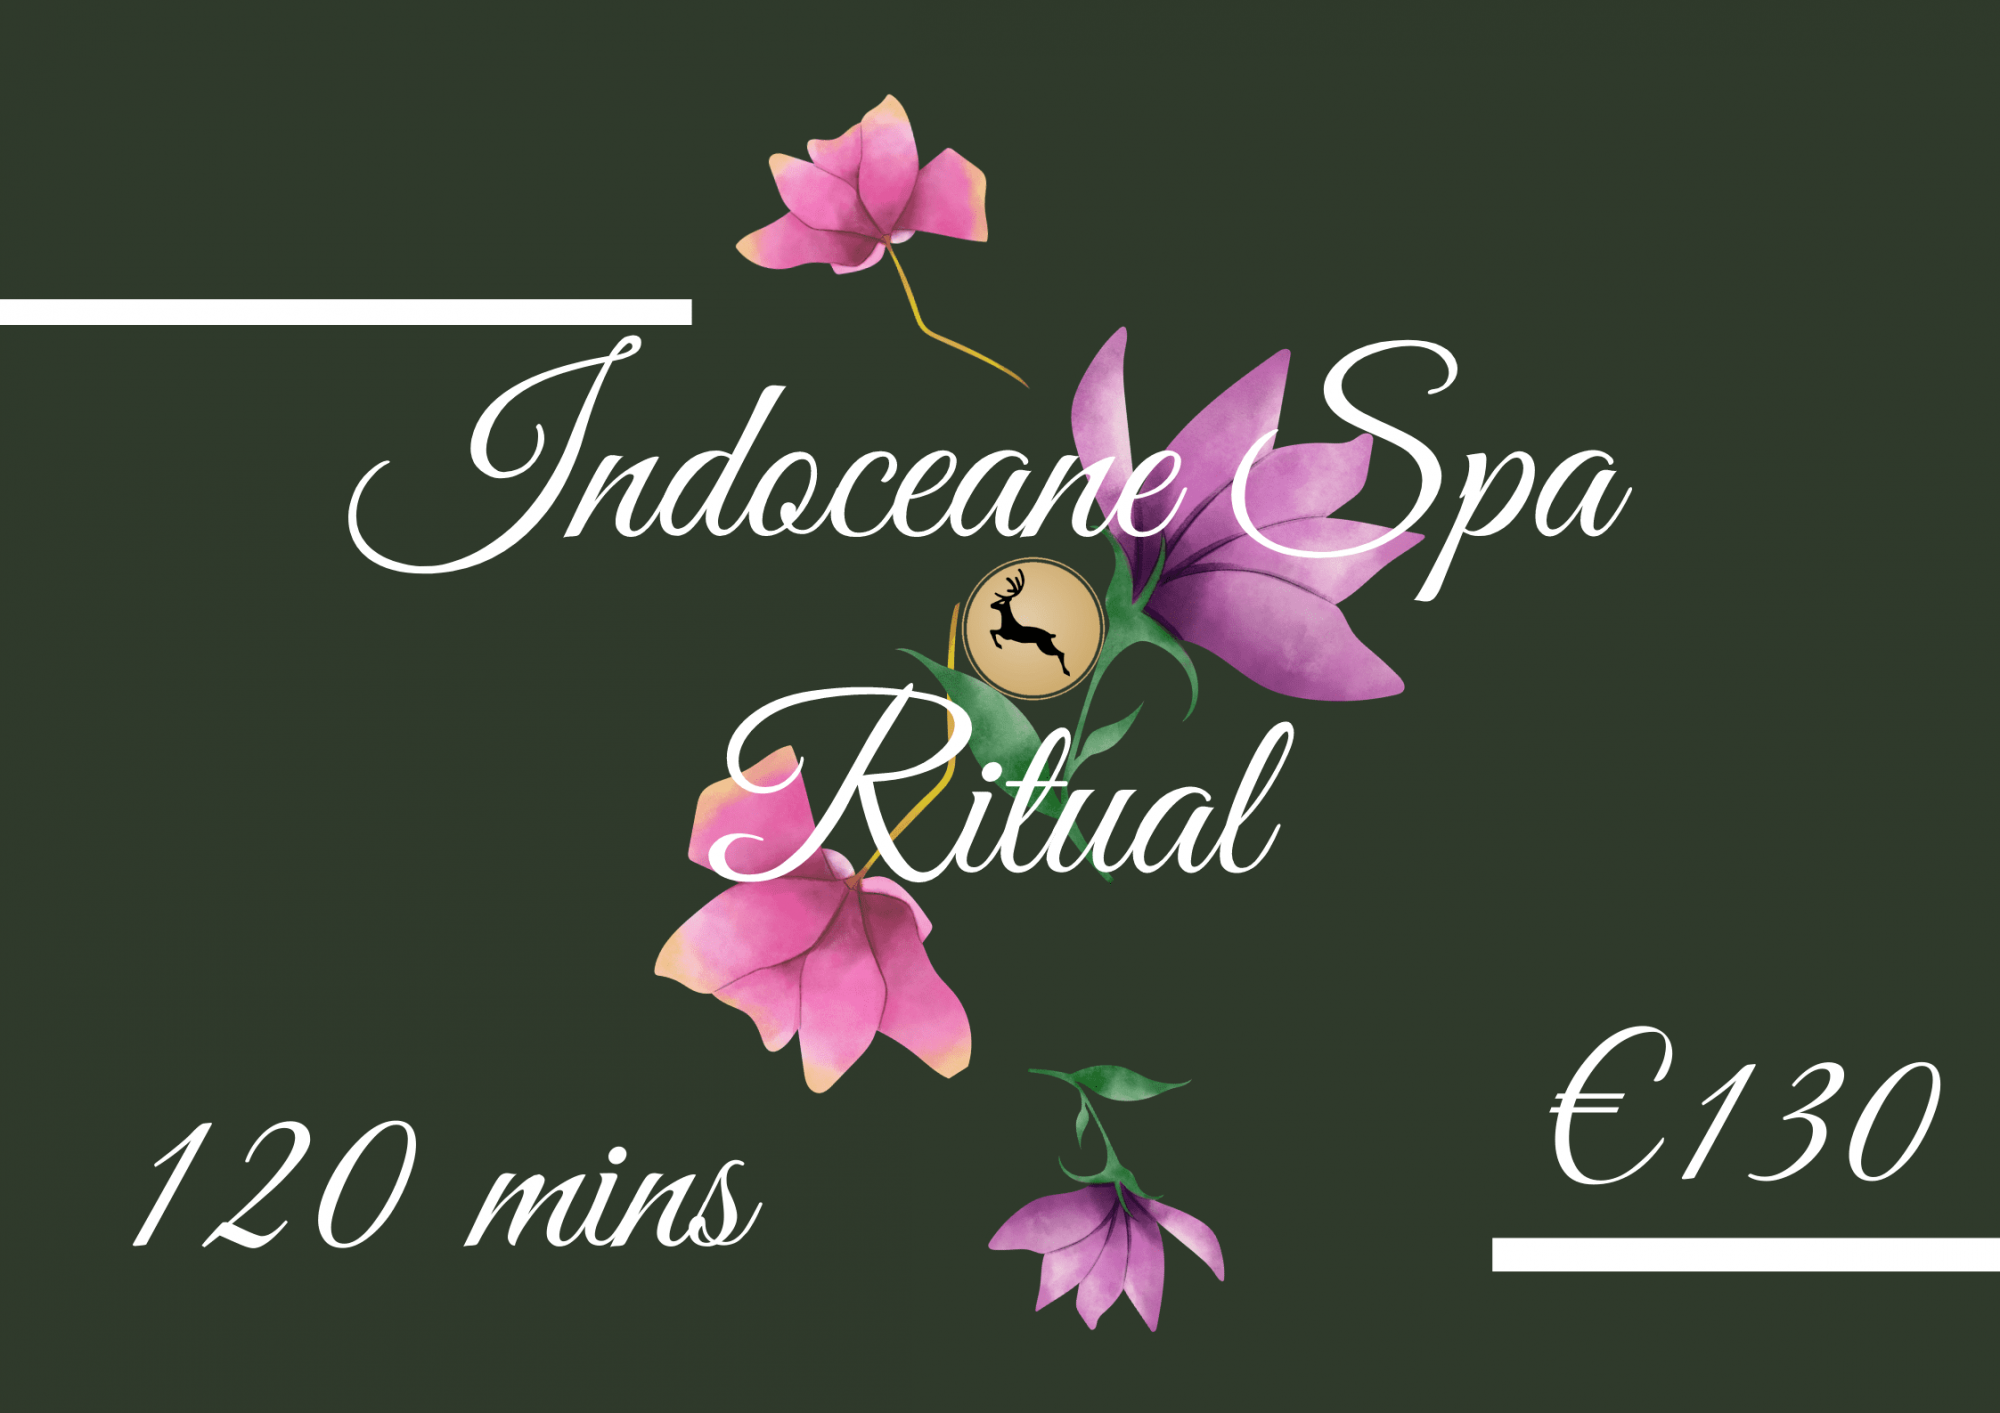 indoceane spa ritual 1